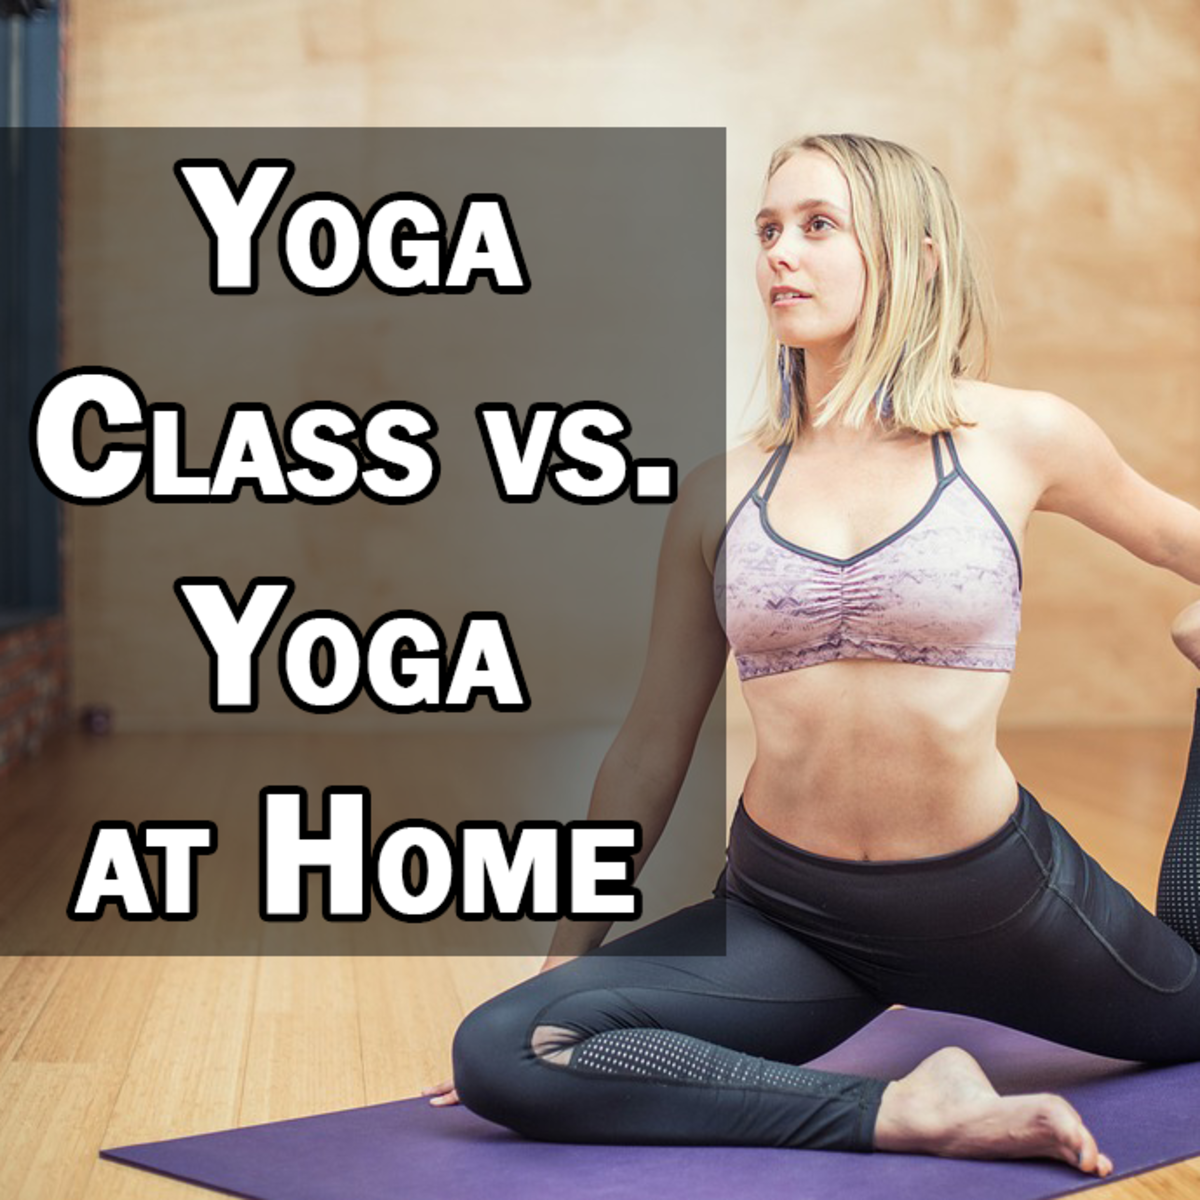 Attending Yoga Class vs. Doing Yoga at Home: Which Is Right for You?